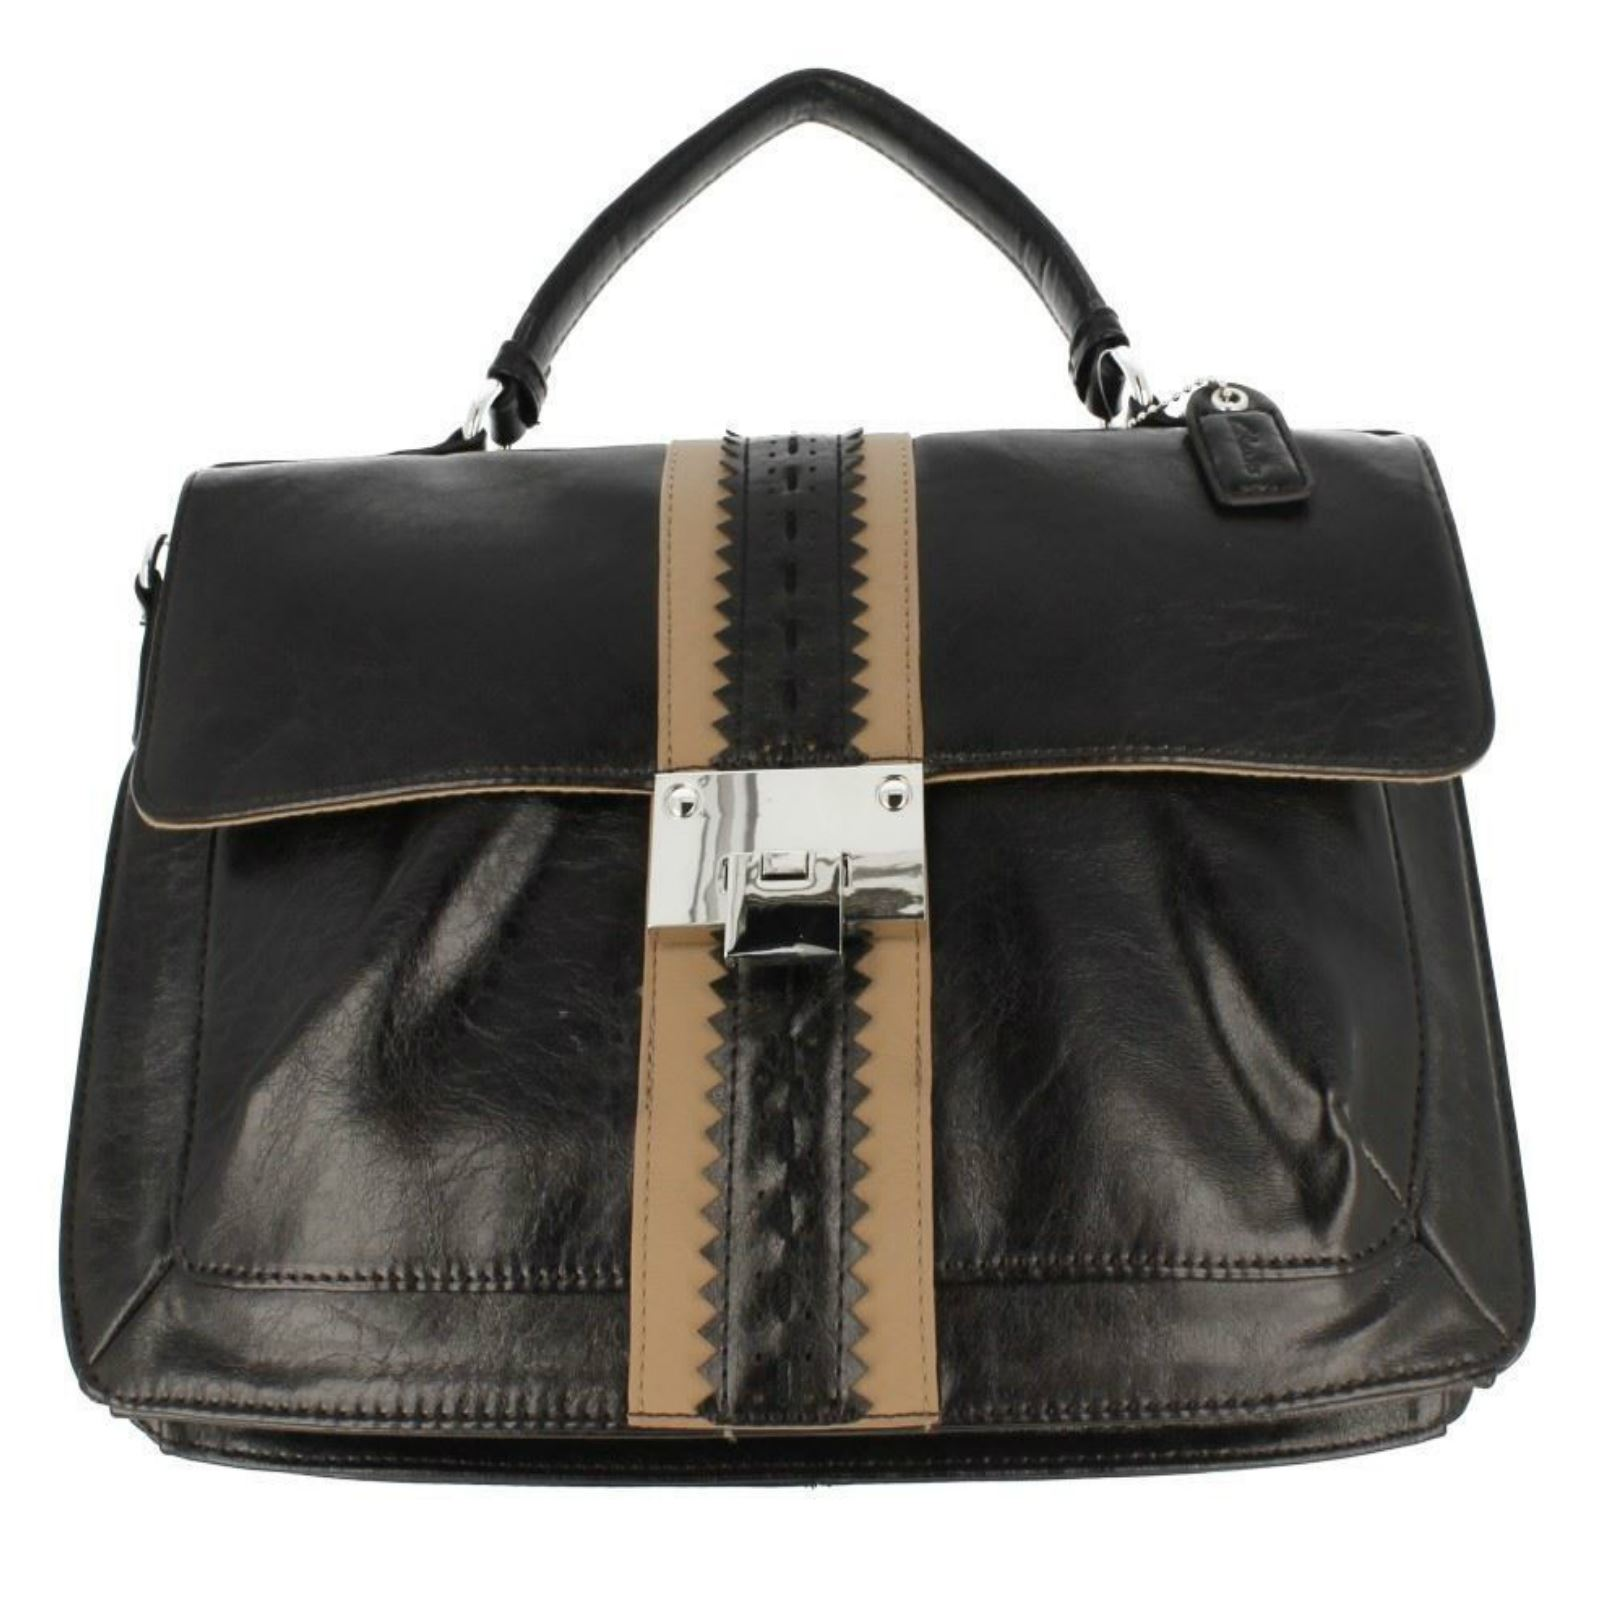 Shop Small Satchels Sale at eBags - experts in bags and accessories since We offer easy returns, expert advice, and millions of customer reviews.